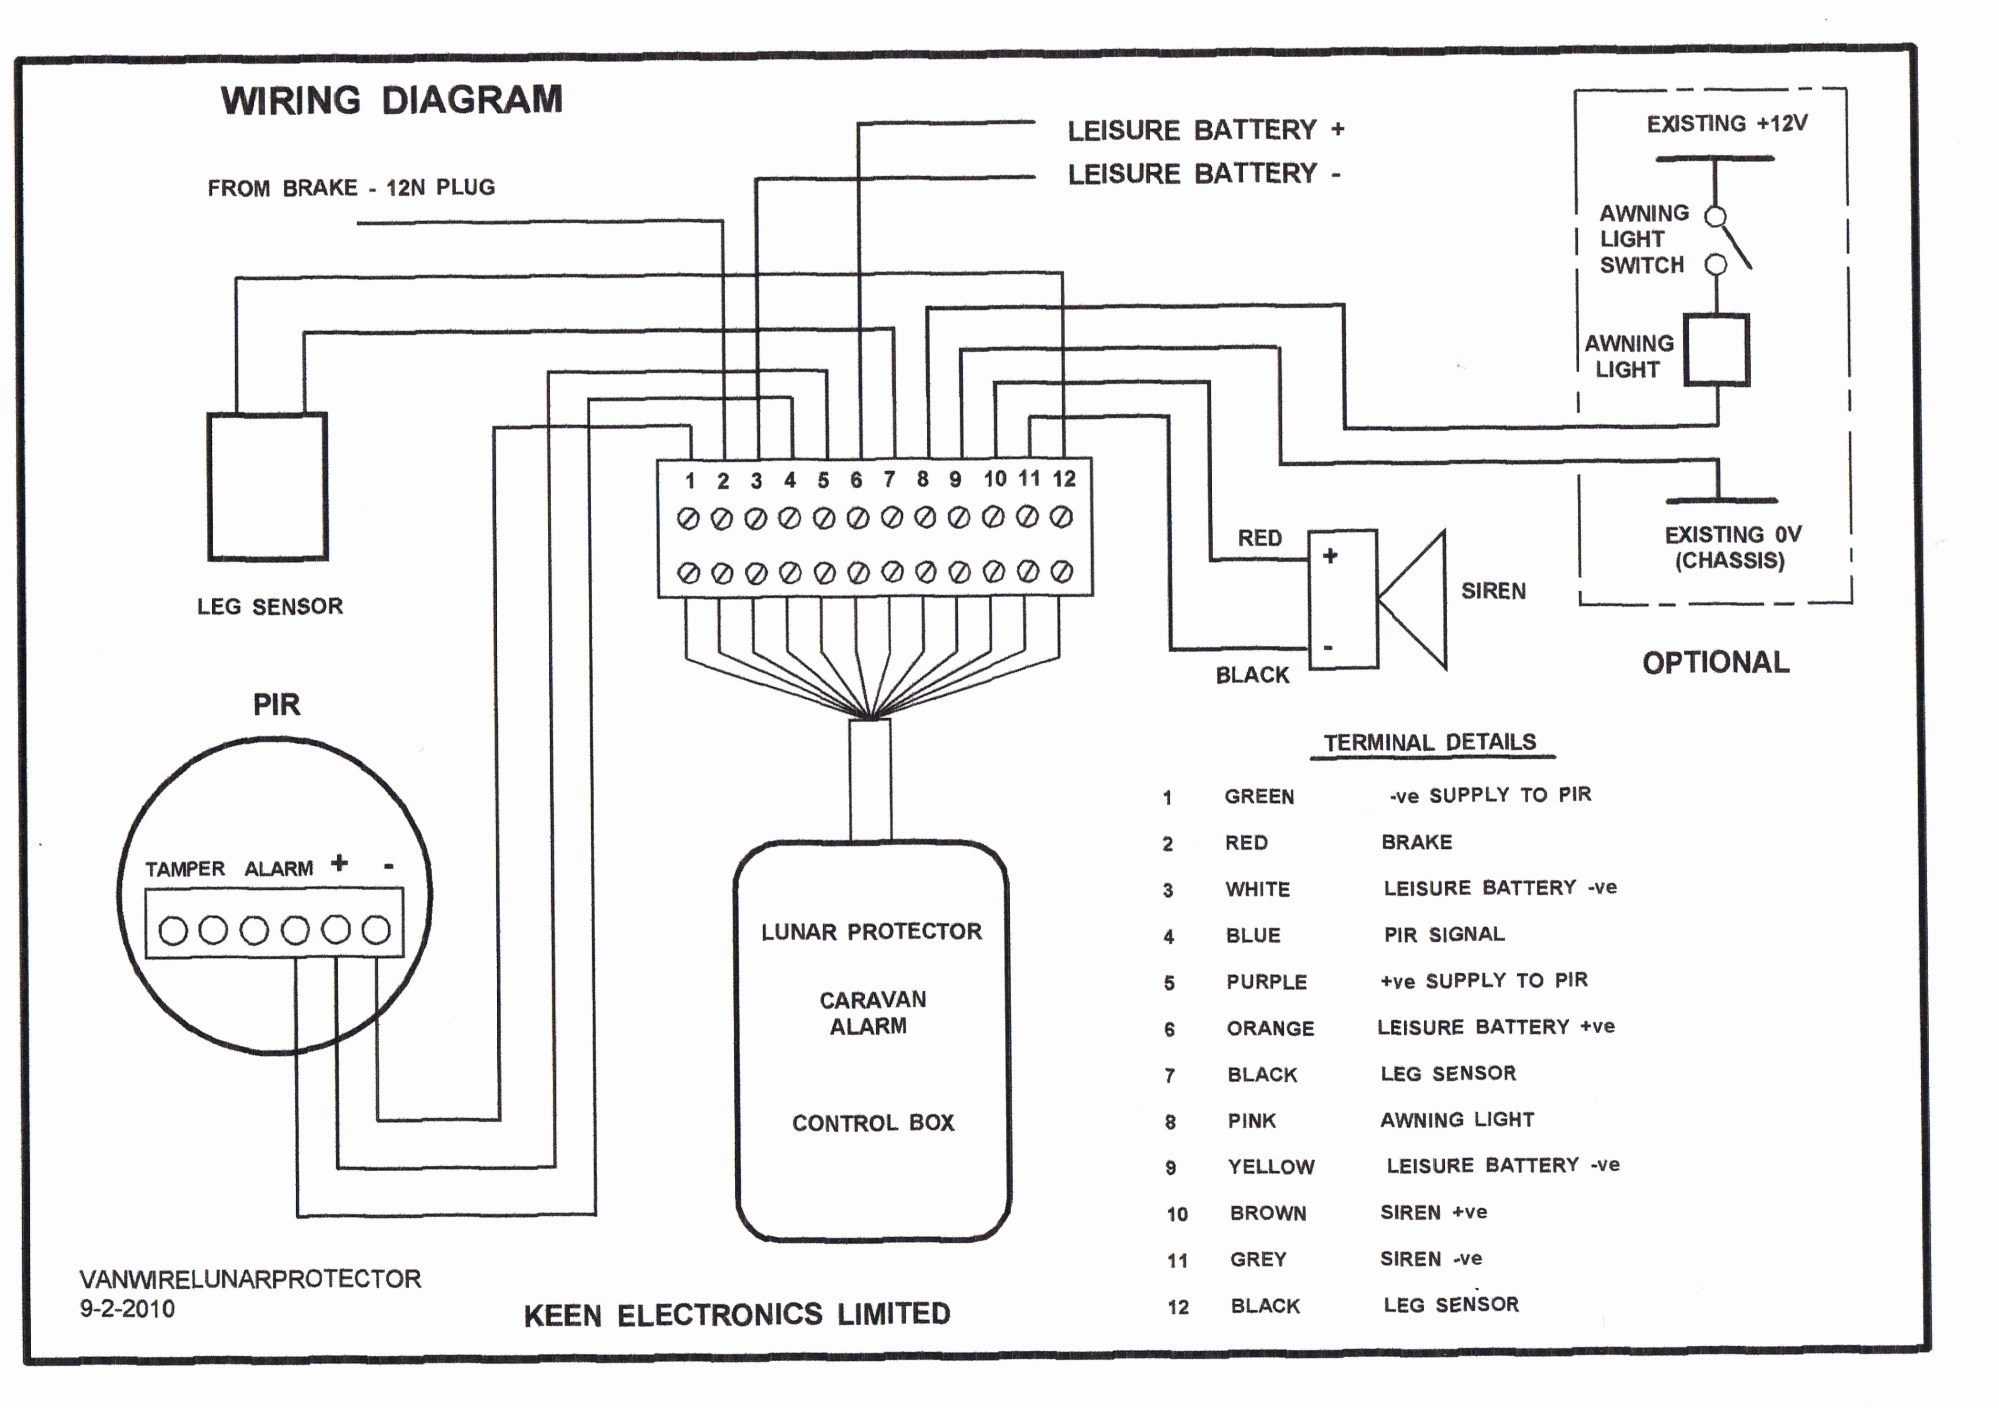 hight resolution of chapman vehicle security system wiring diagram wiring diagram for home security camera new wiring diagram